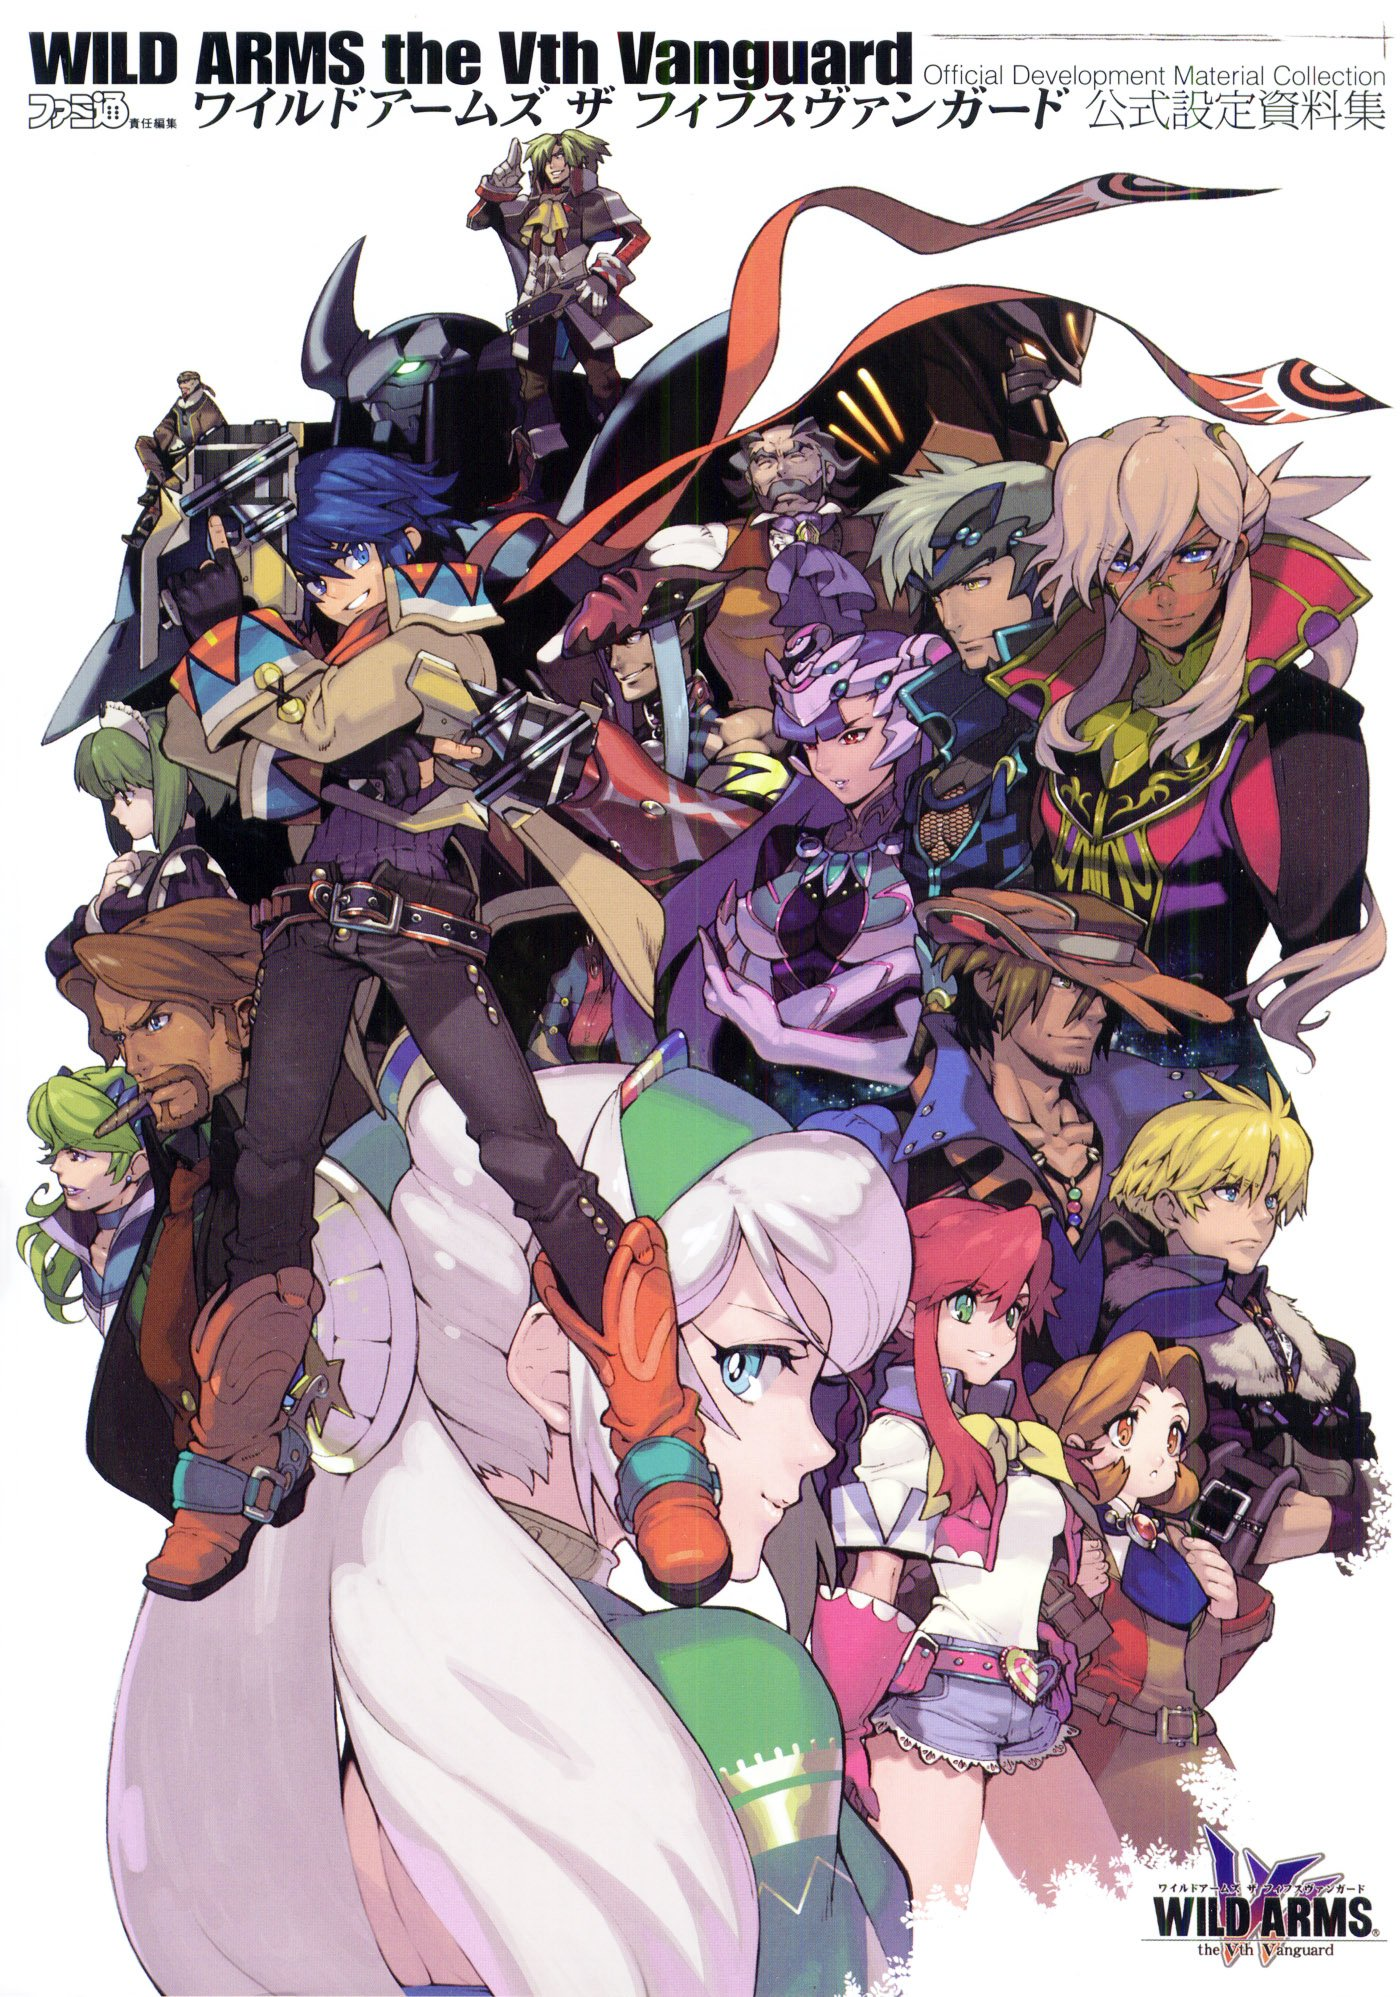 Wild Arms: the Vth Vanguard - Official Development Material Collection